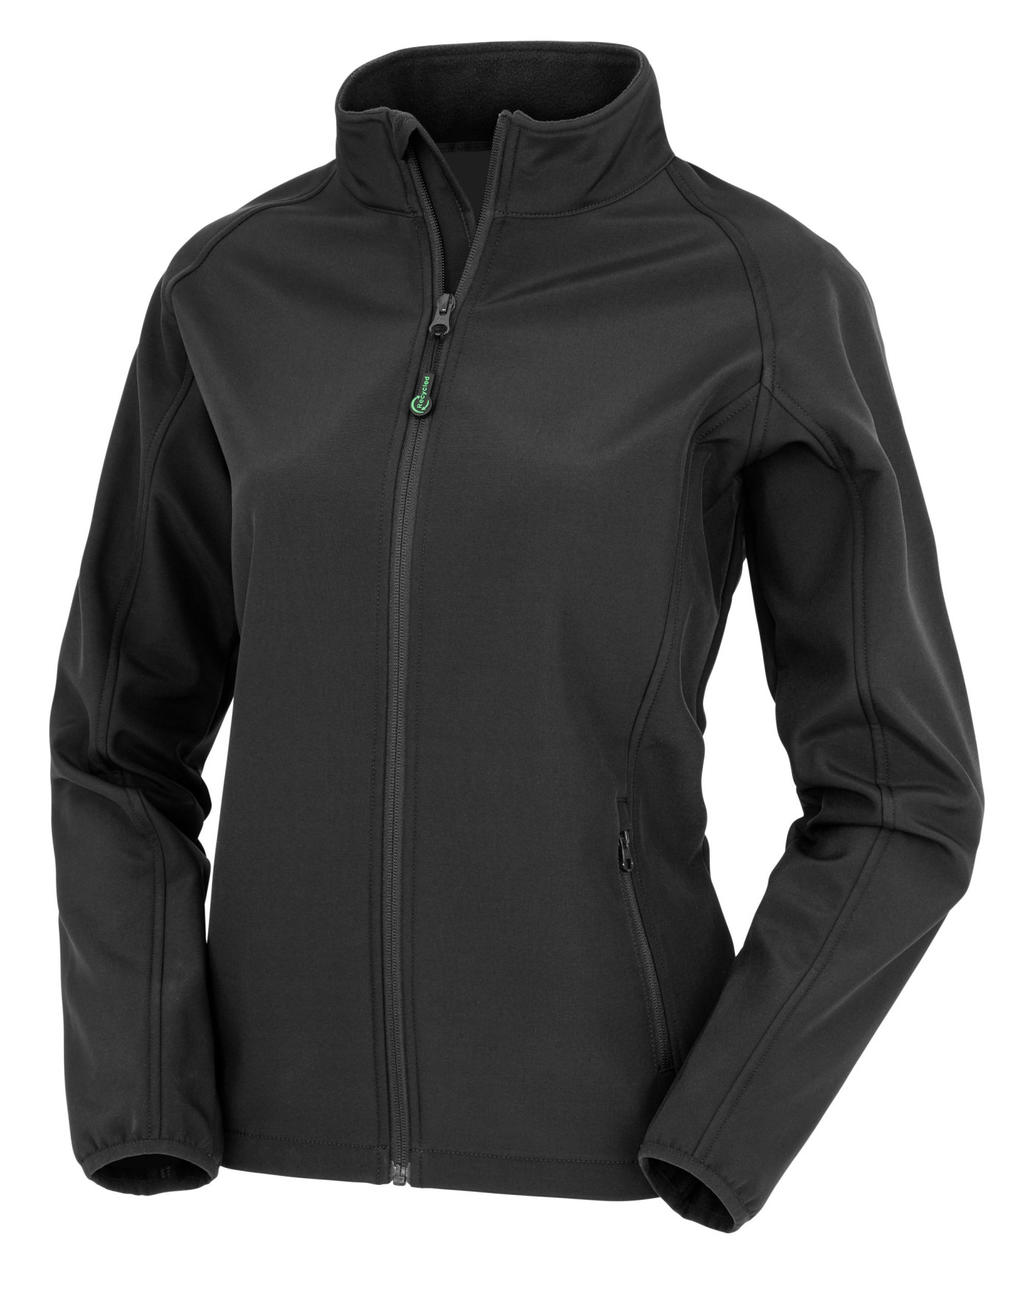 Women's Recycled 2-Layer Printable Softshell Jkt